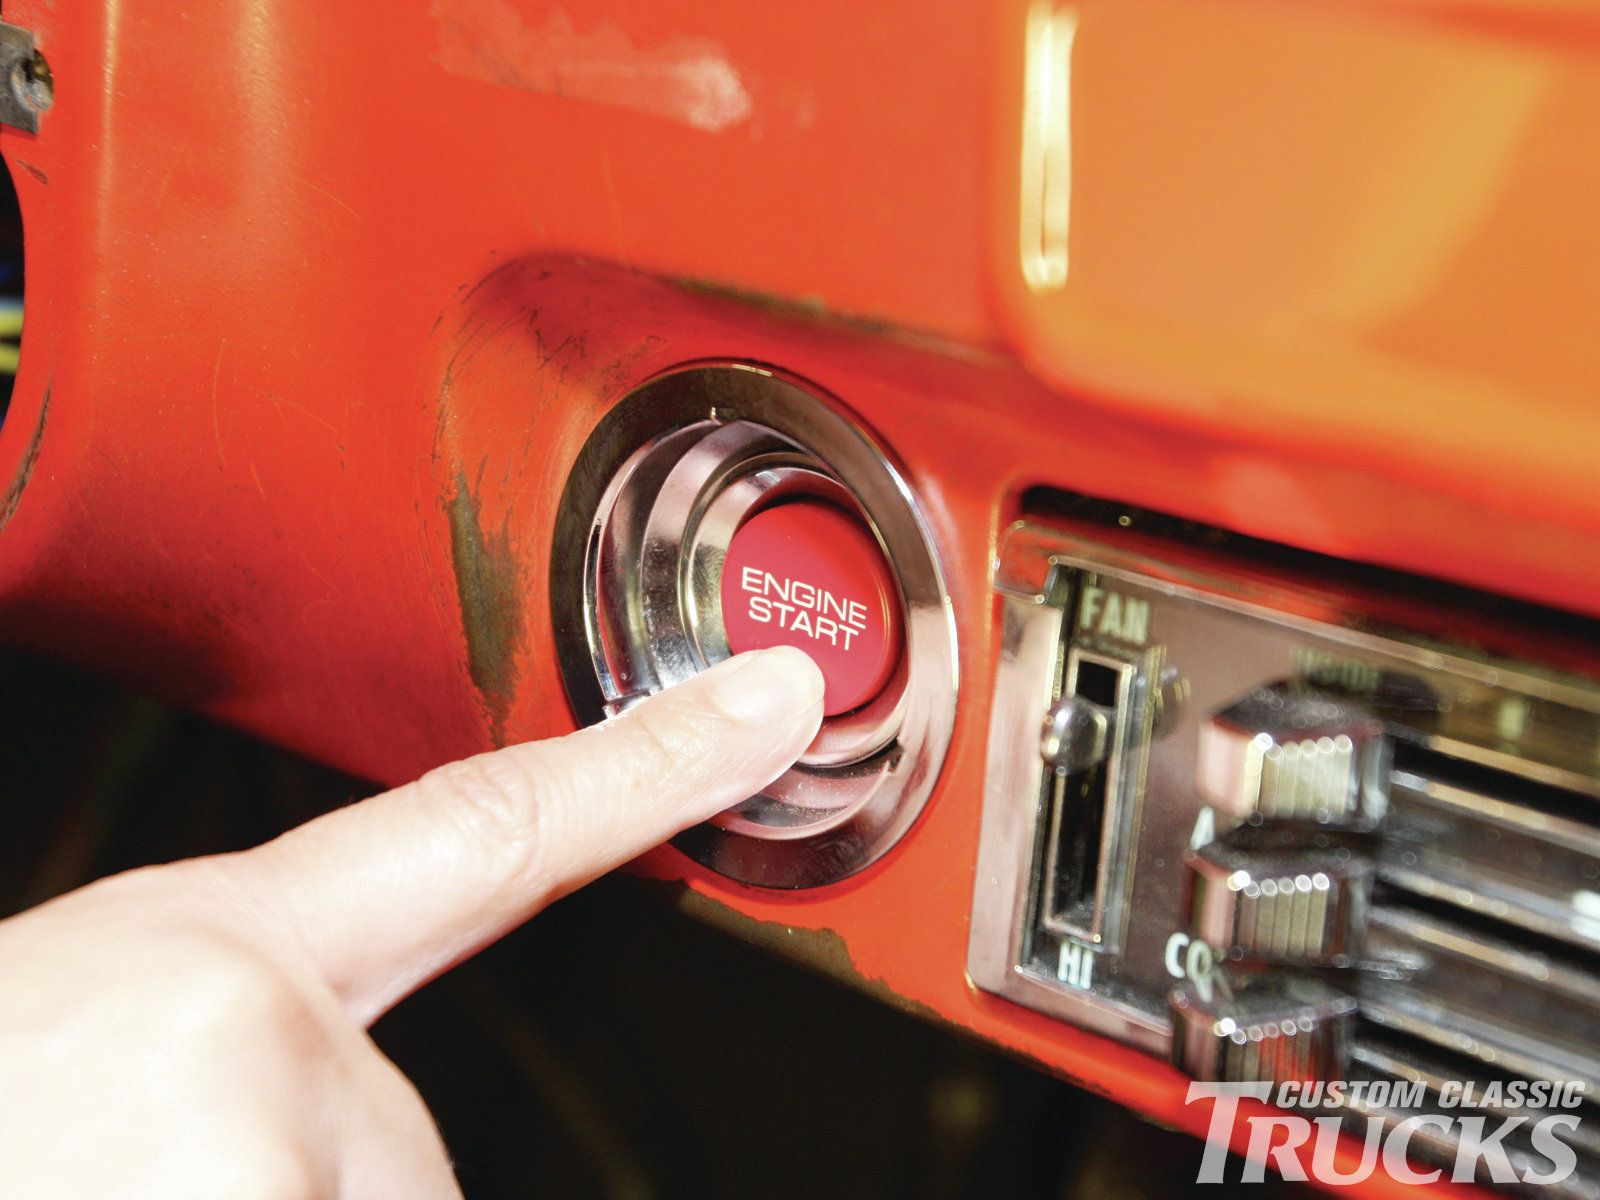 One of the more recent developments for the aftermarket is the keyless ignition flaming river